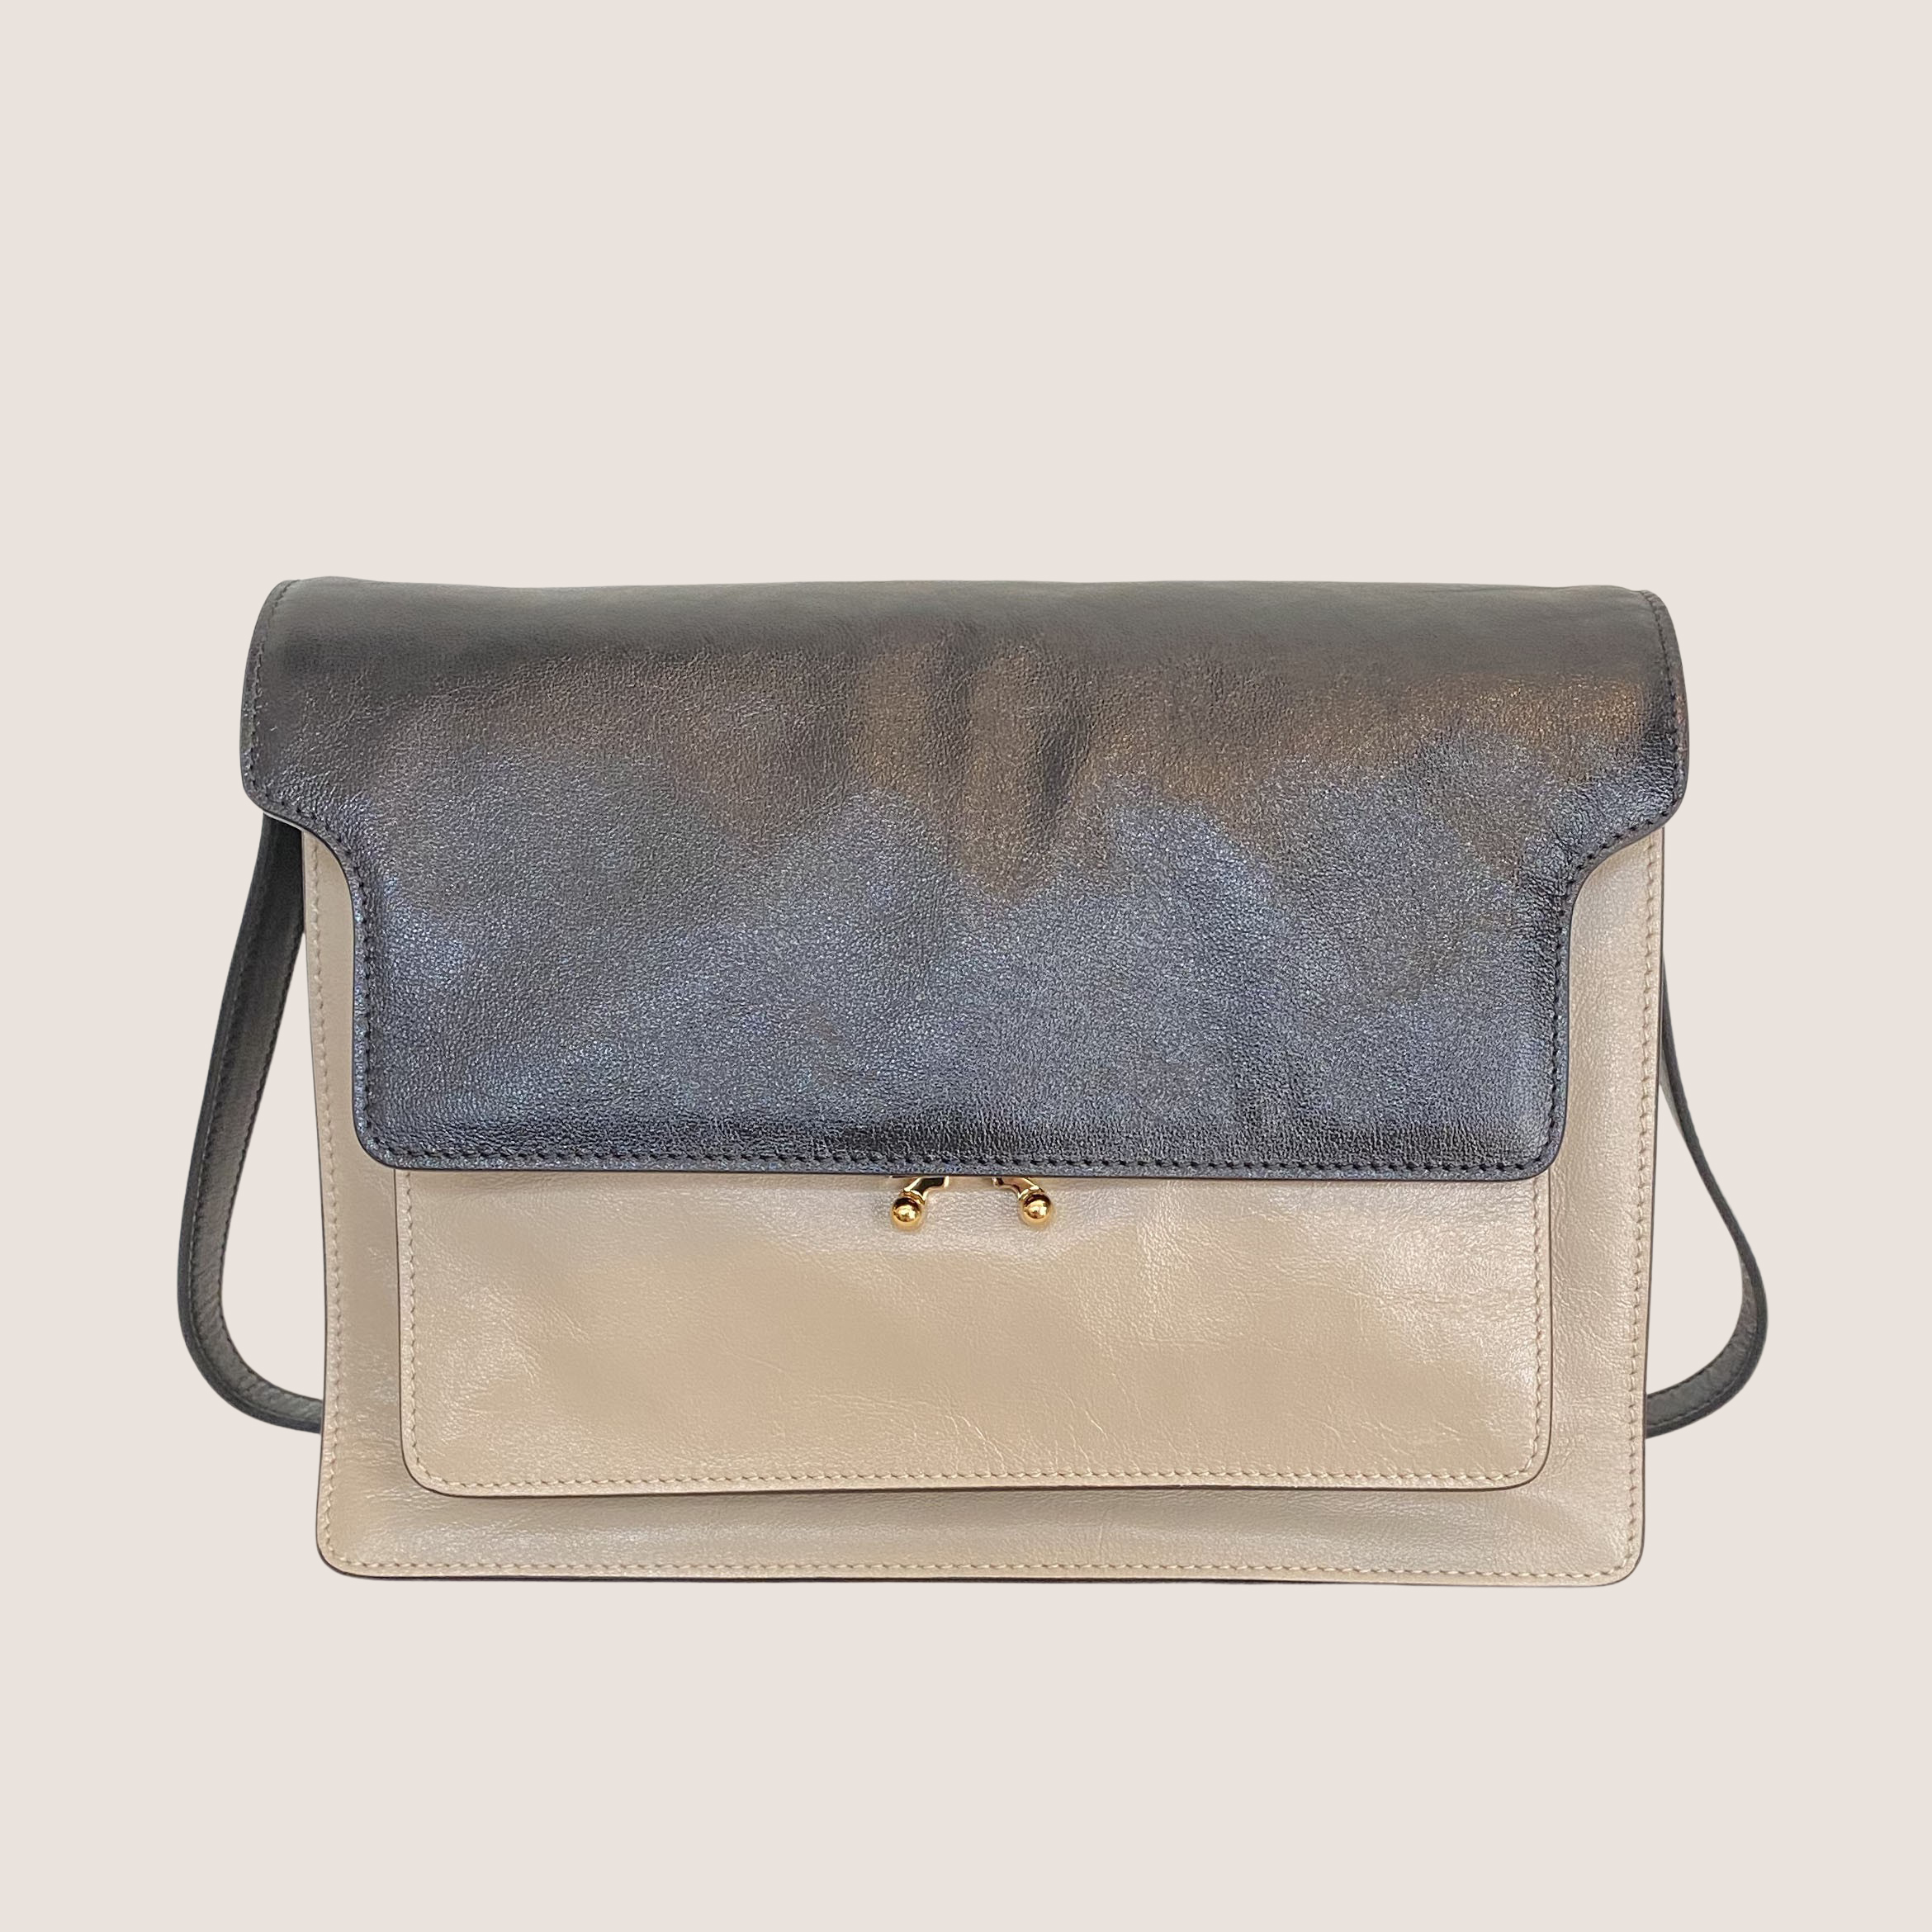 Trunk Bag Large Soft Two Color